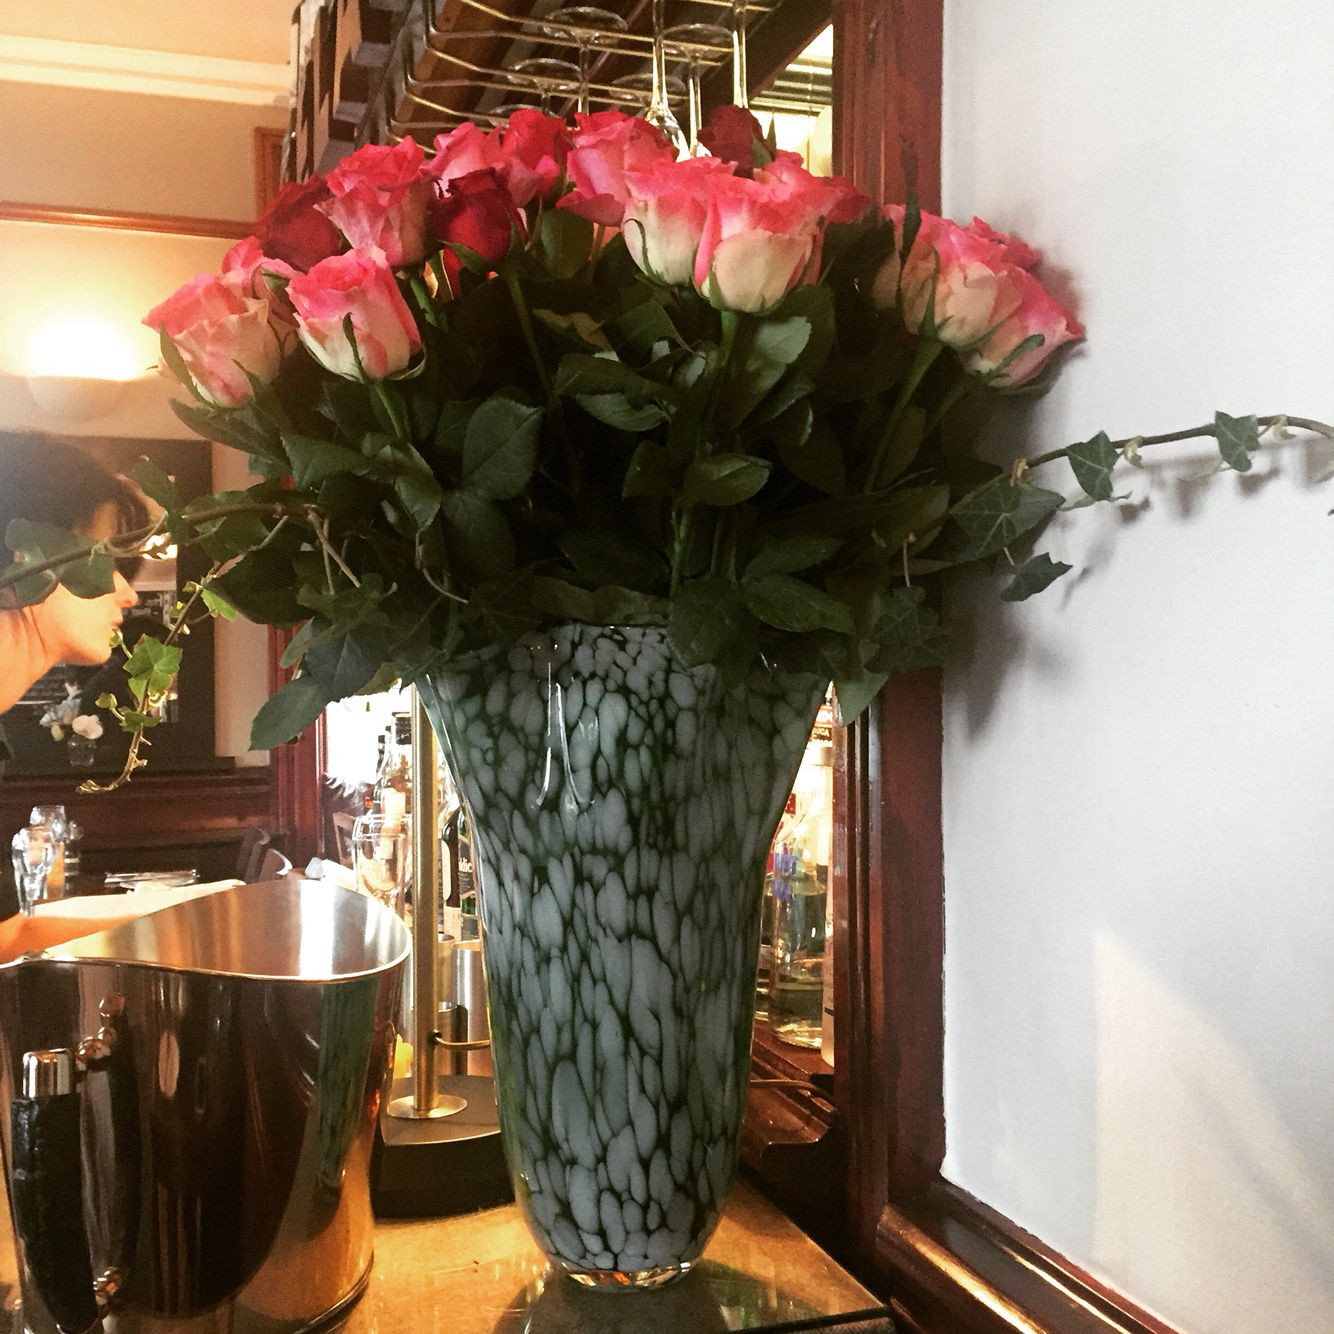 light bulb vase diy of lovely roses and vase moments pinterest in lovely roses and vase